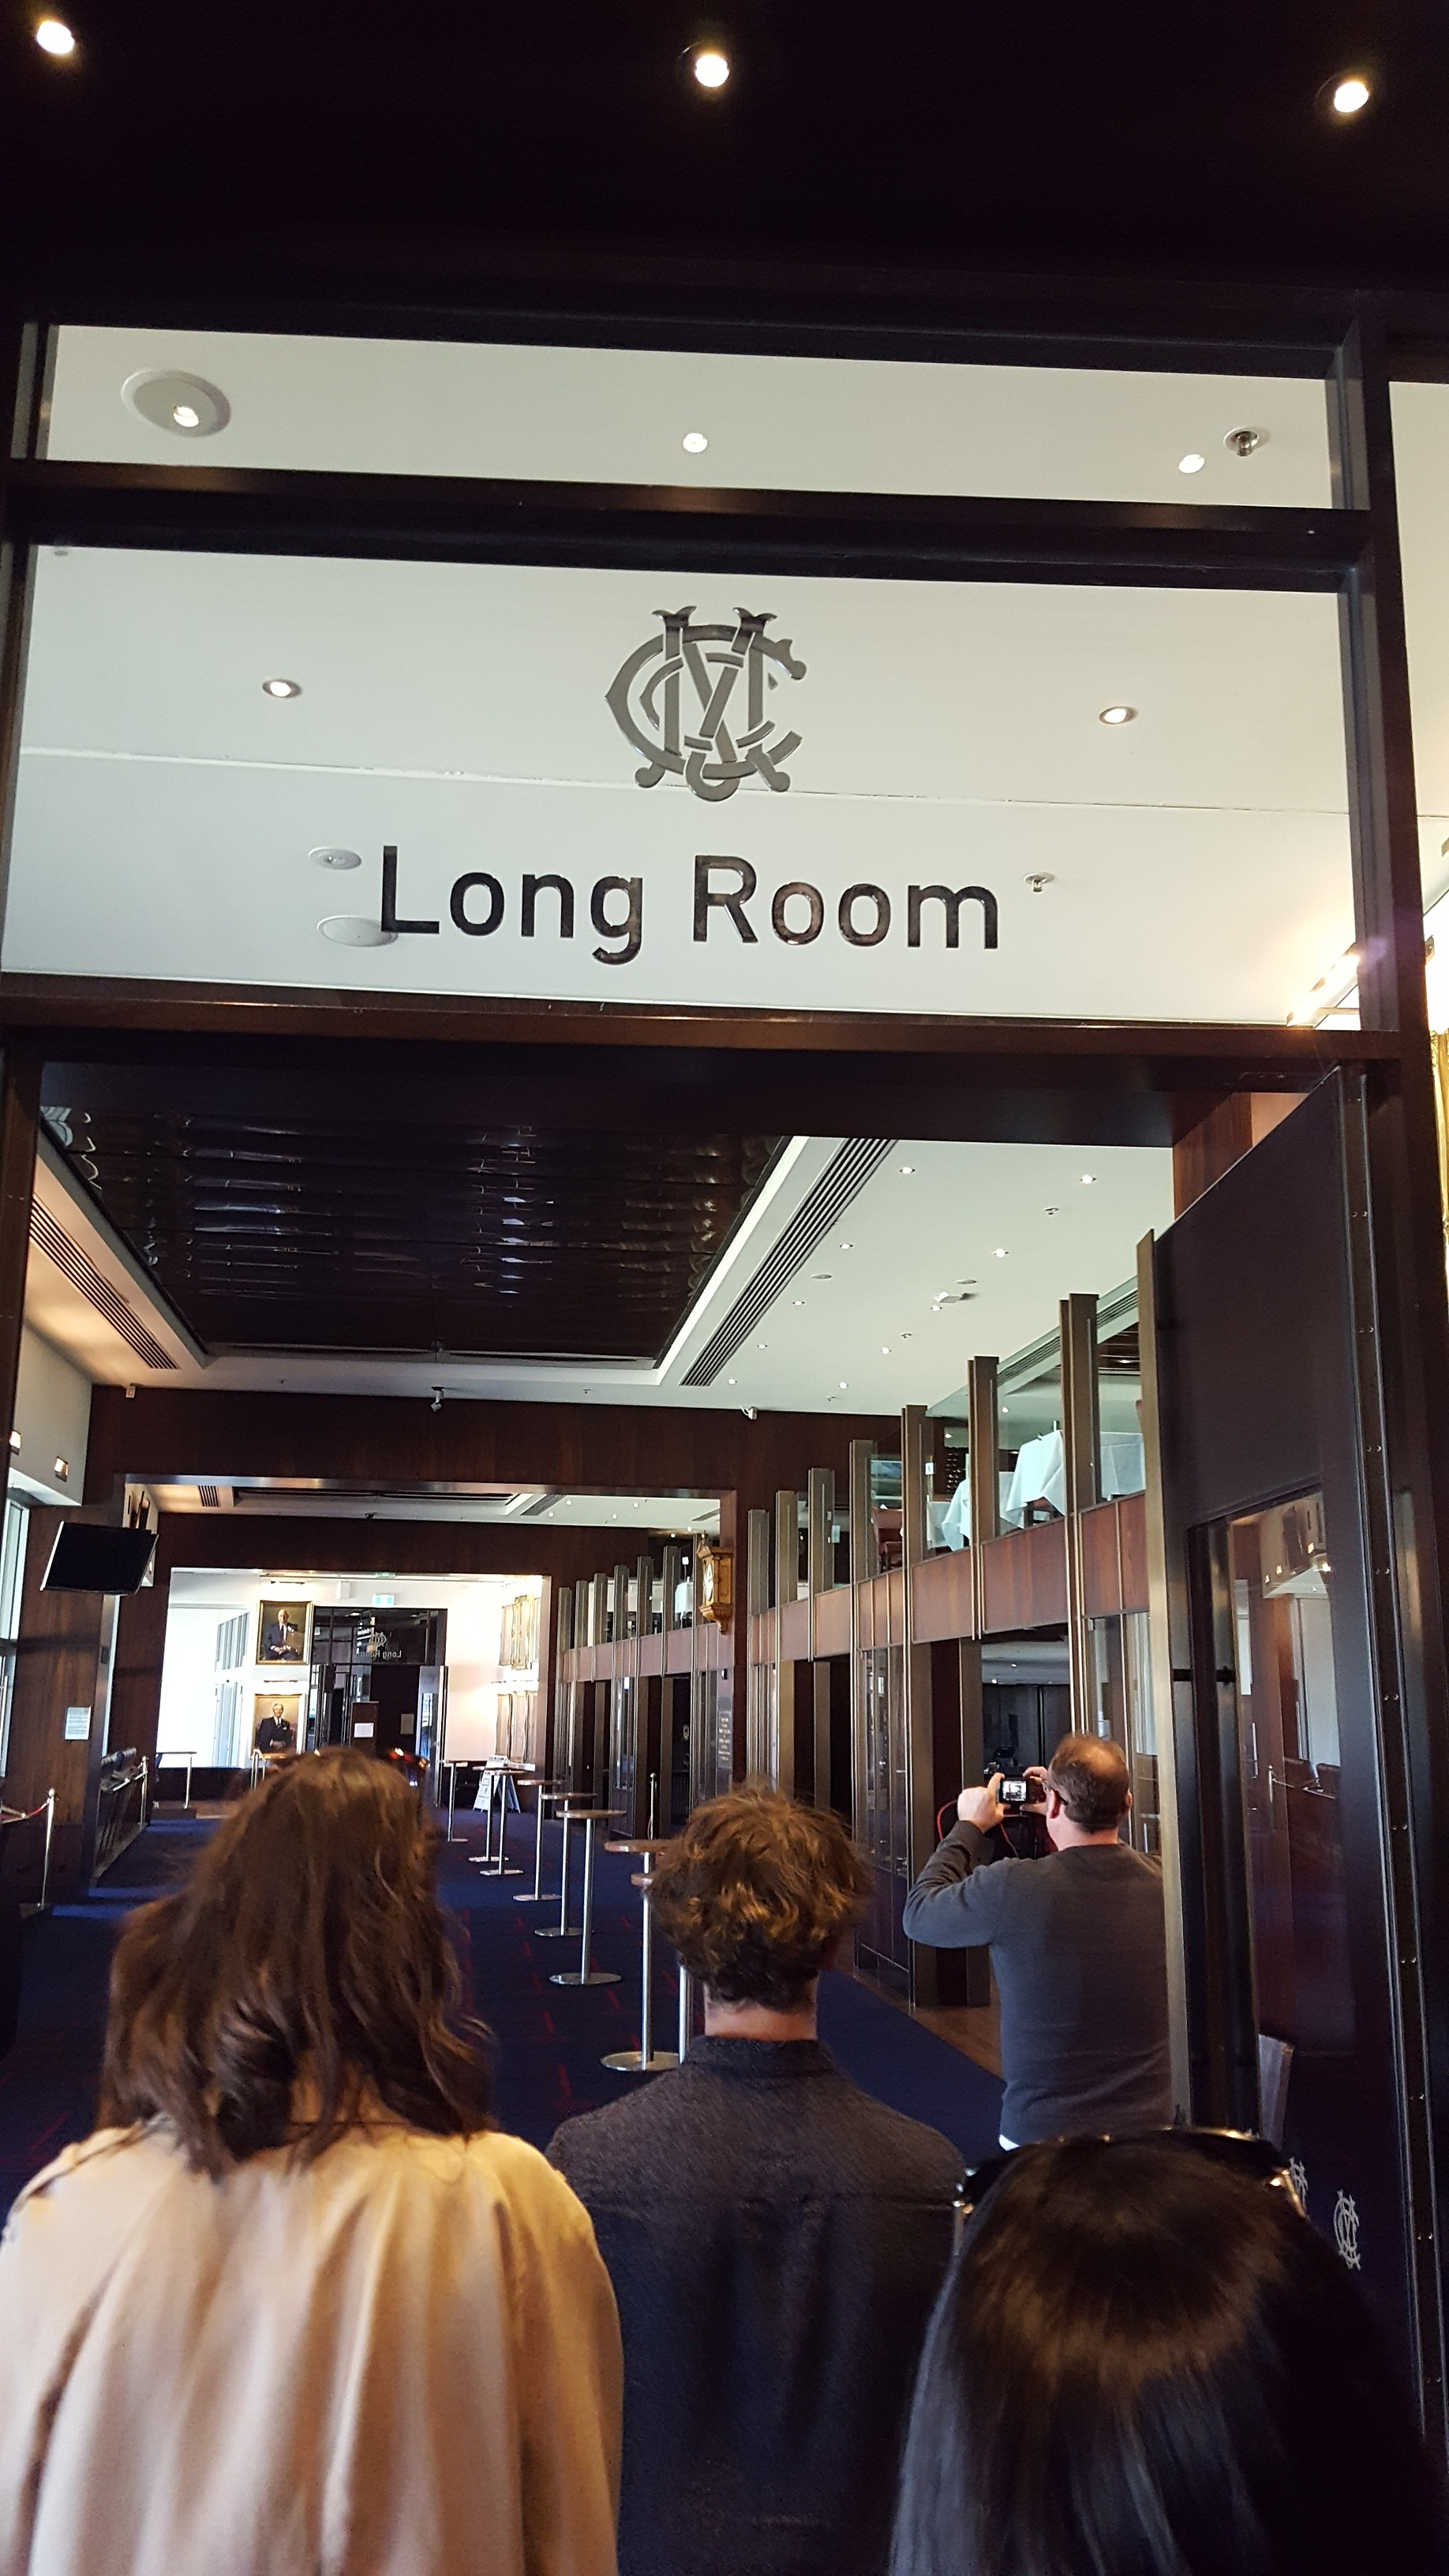 Keep walking...you can go into the Long Room on tour without a jacket and collar!